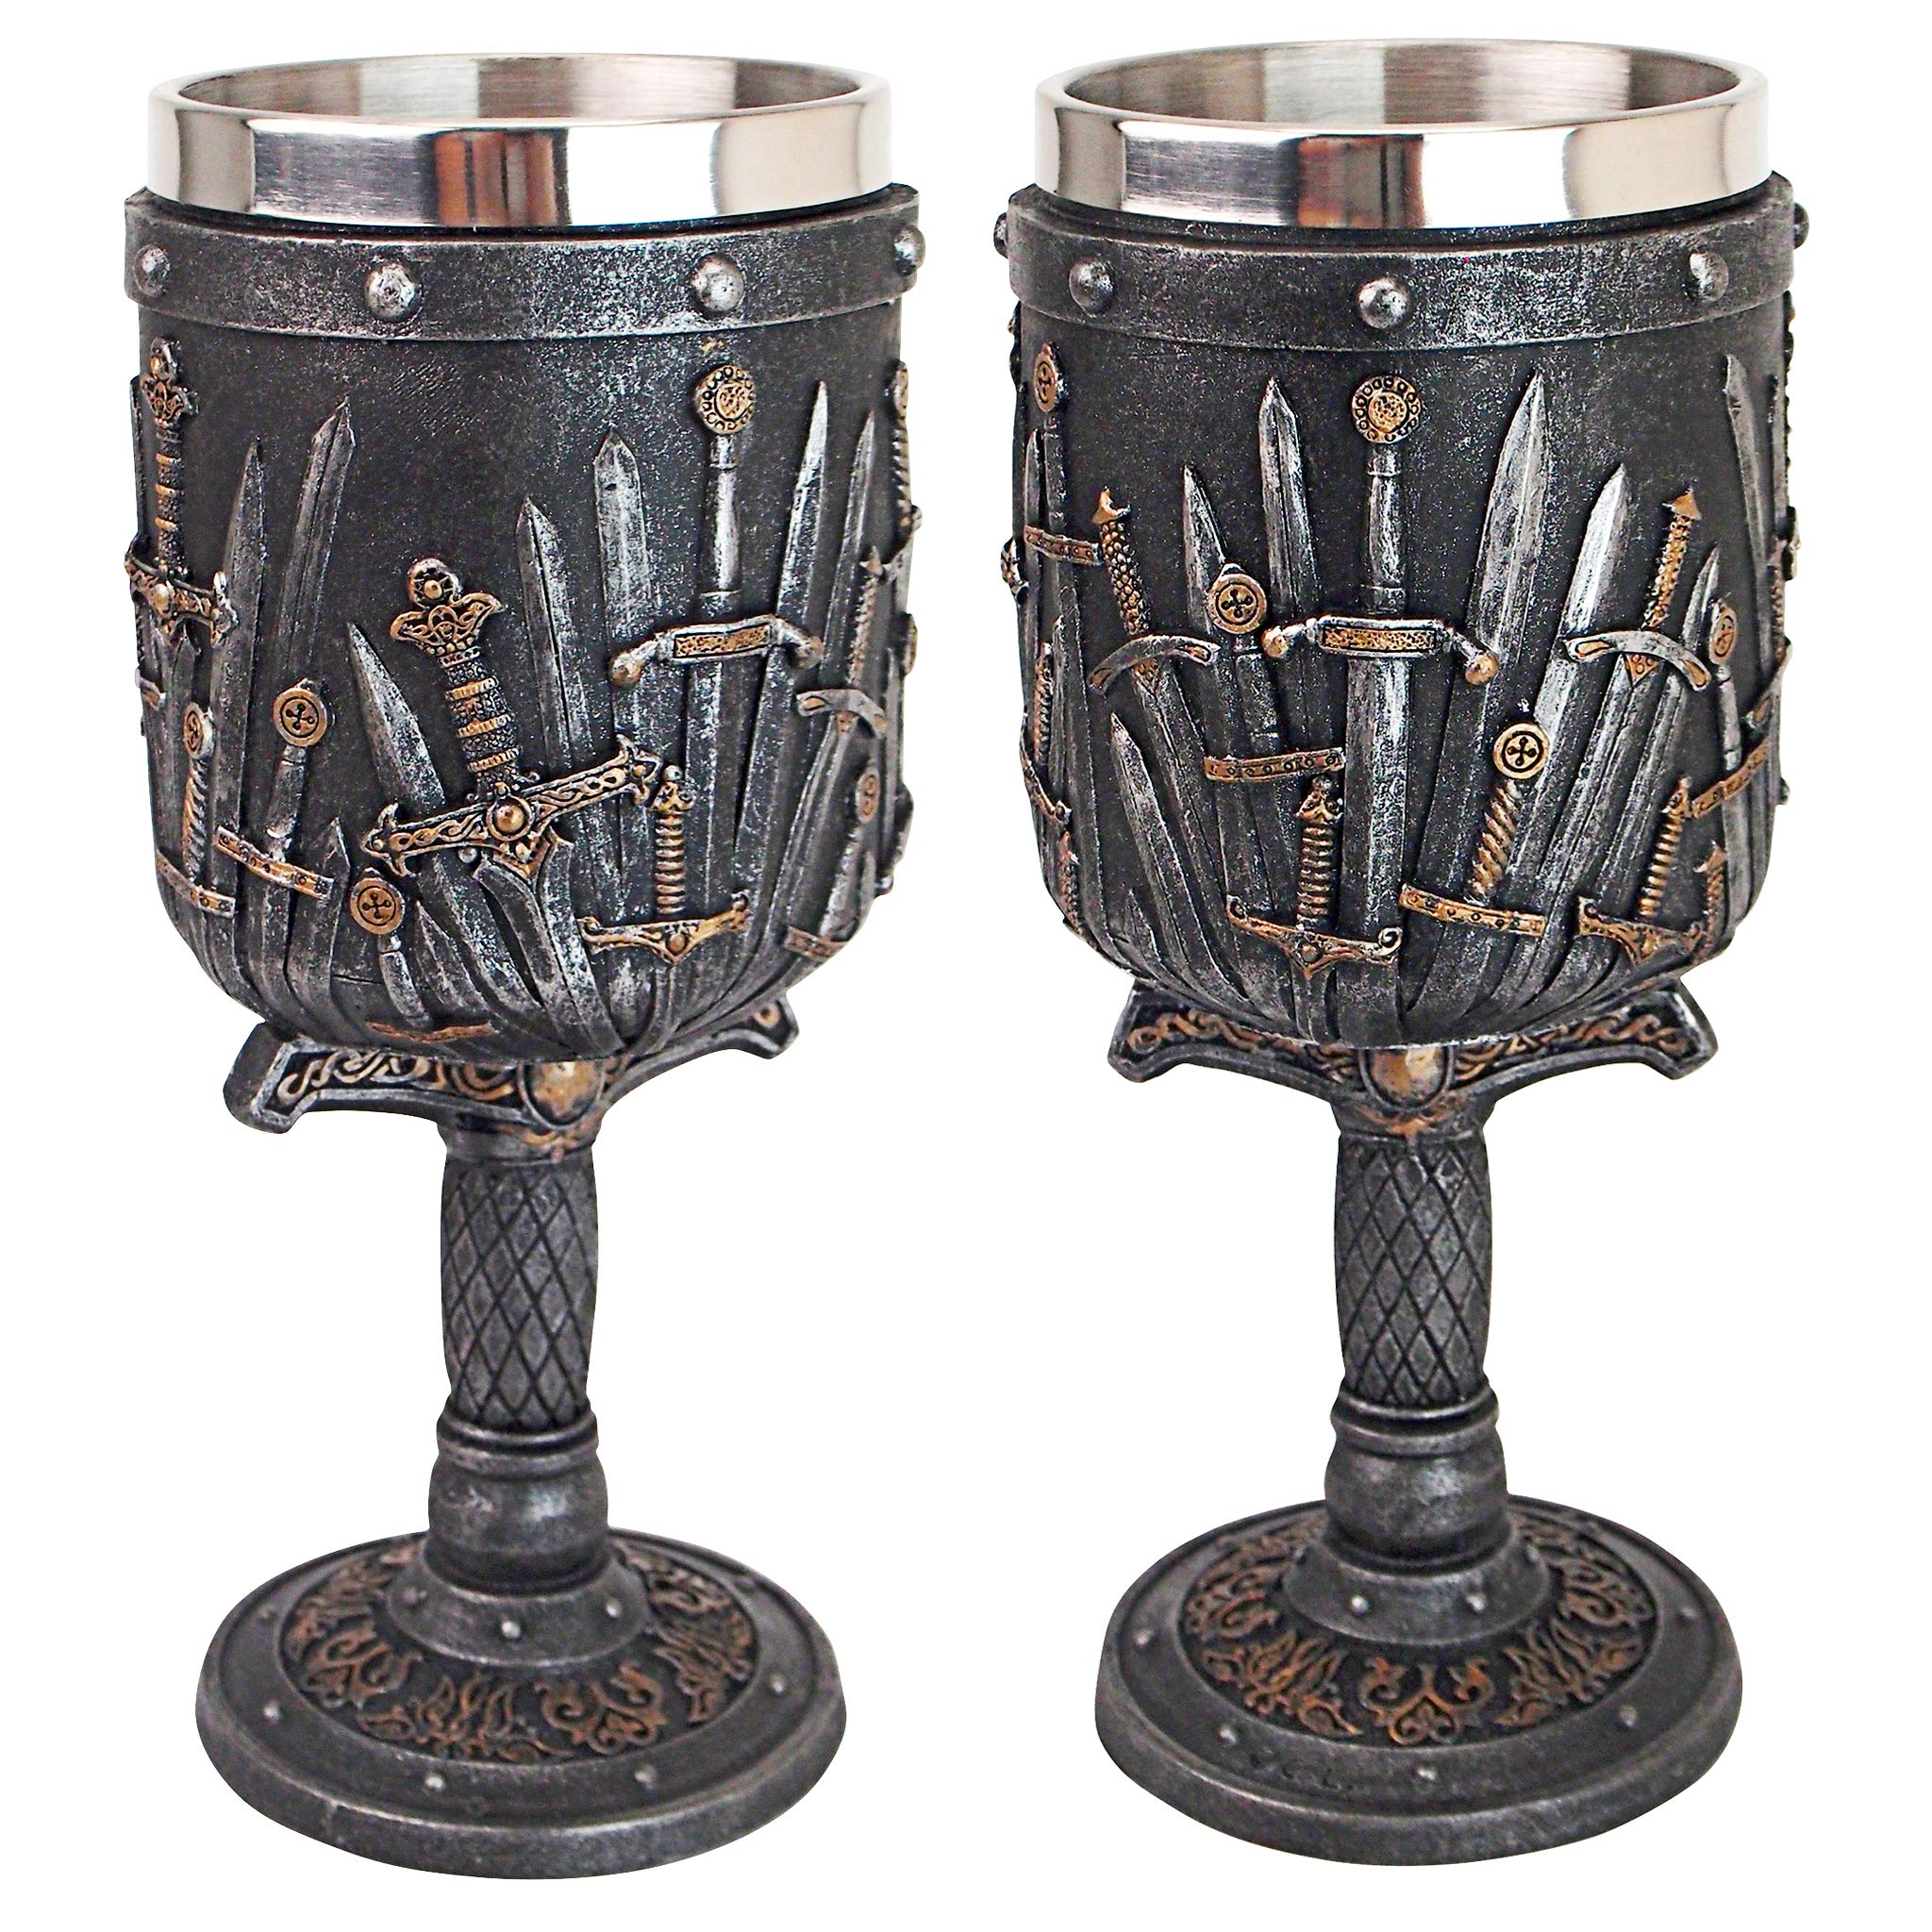 Design Toscano CL97423 Lord of the Swords Gothic Goblet, 8.5 Inches, greystone